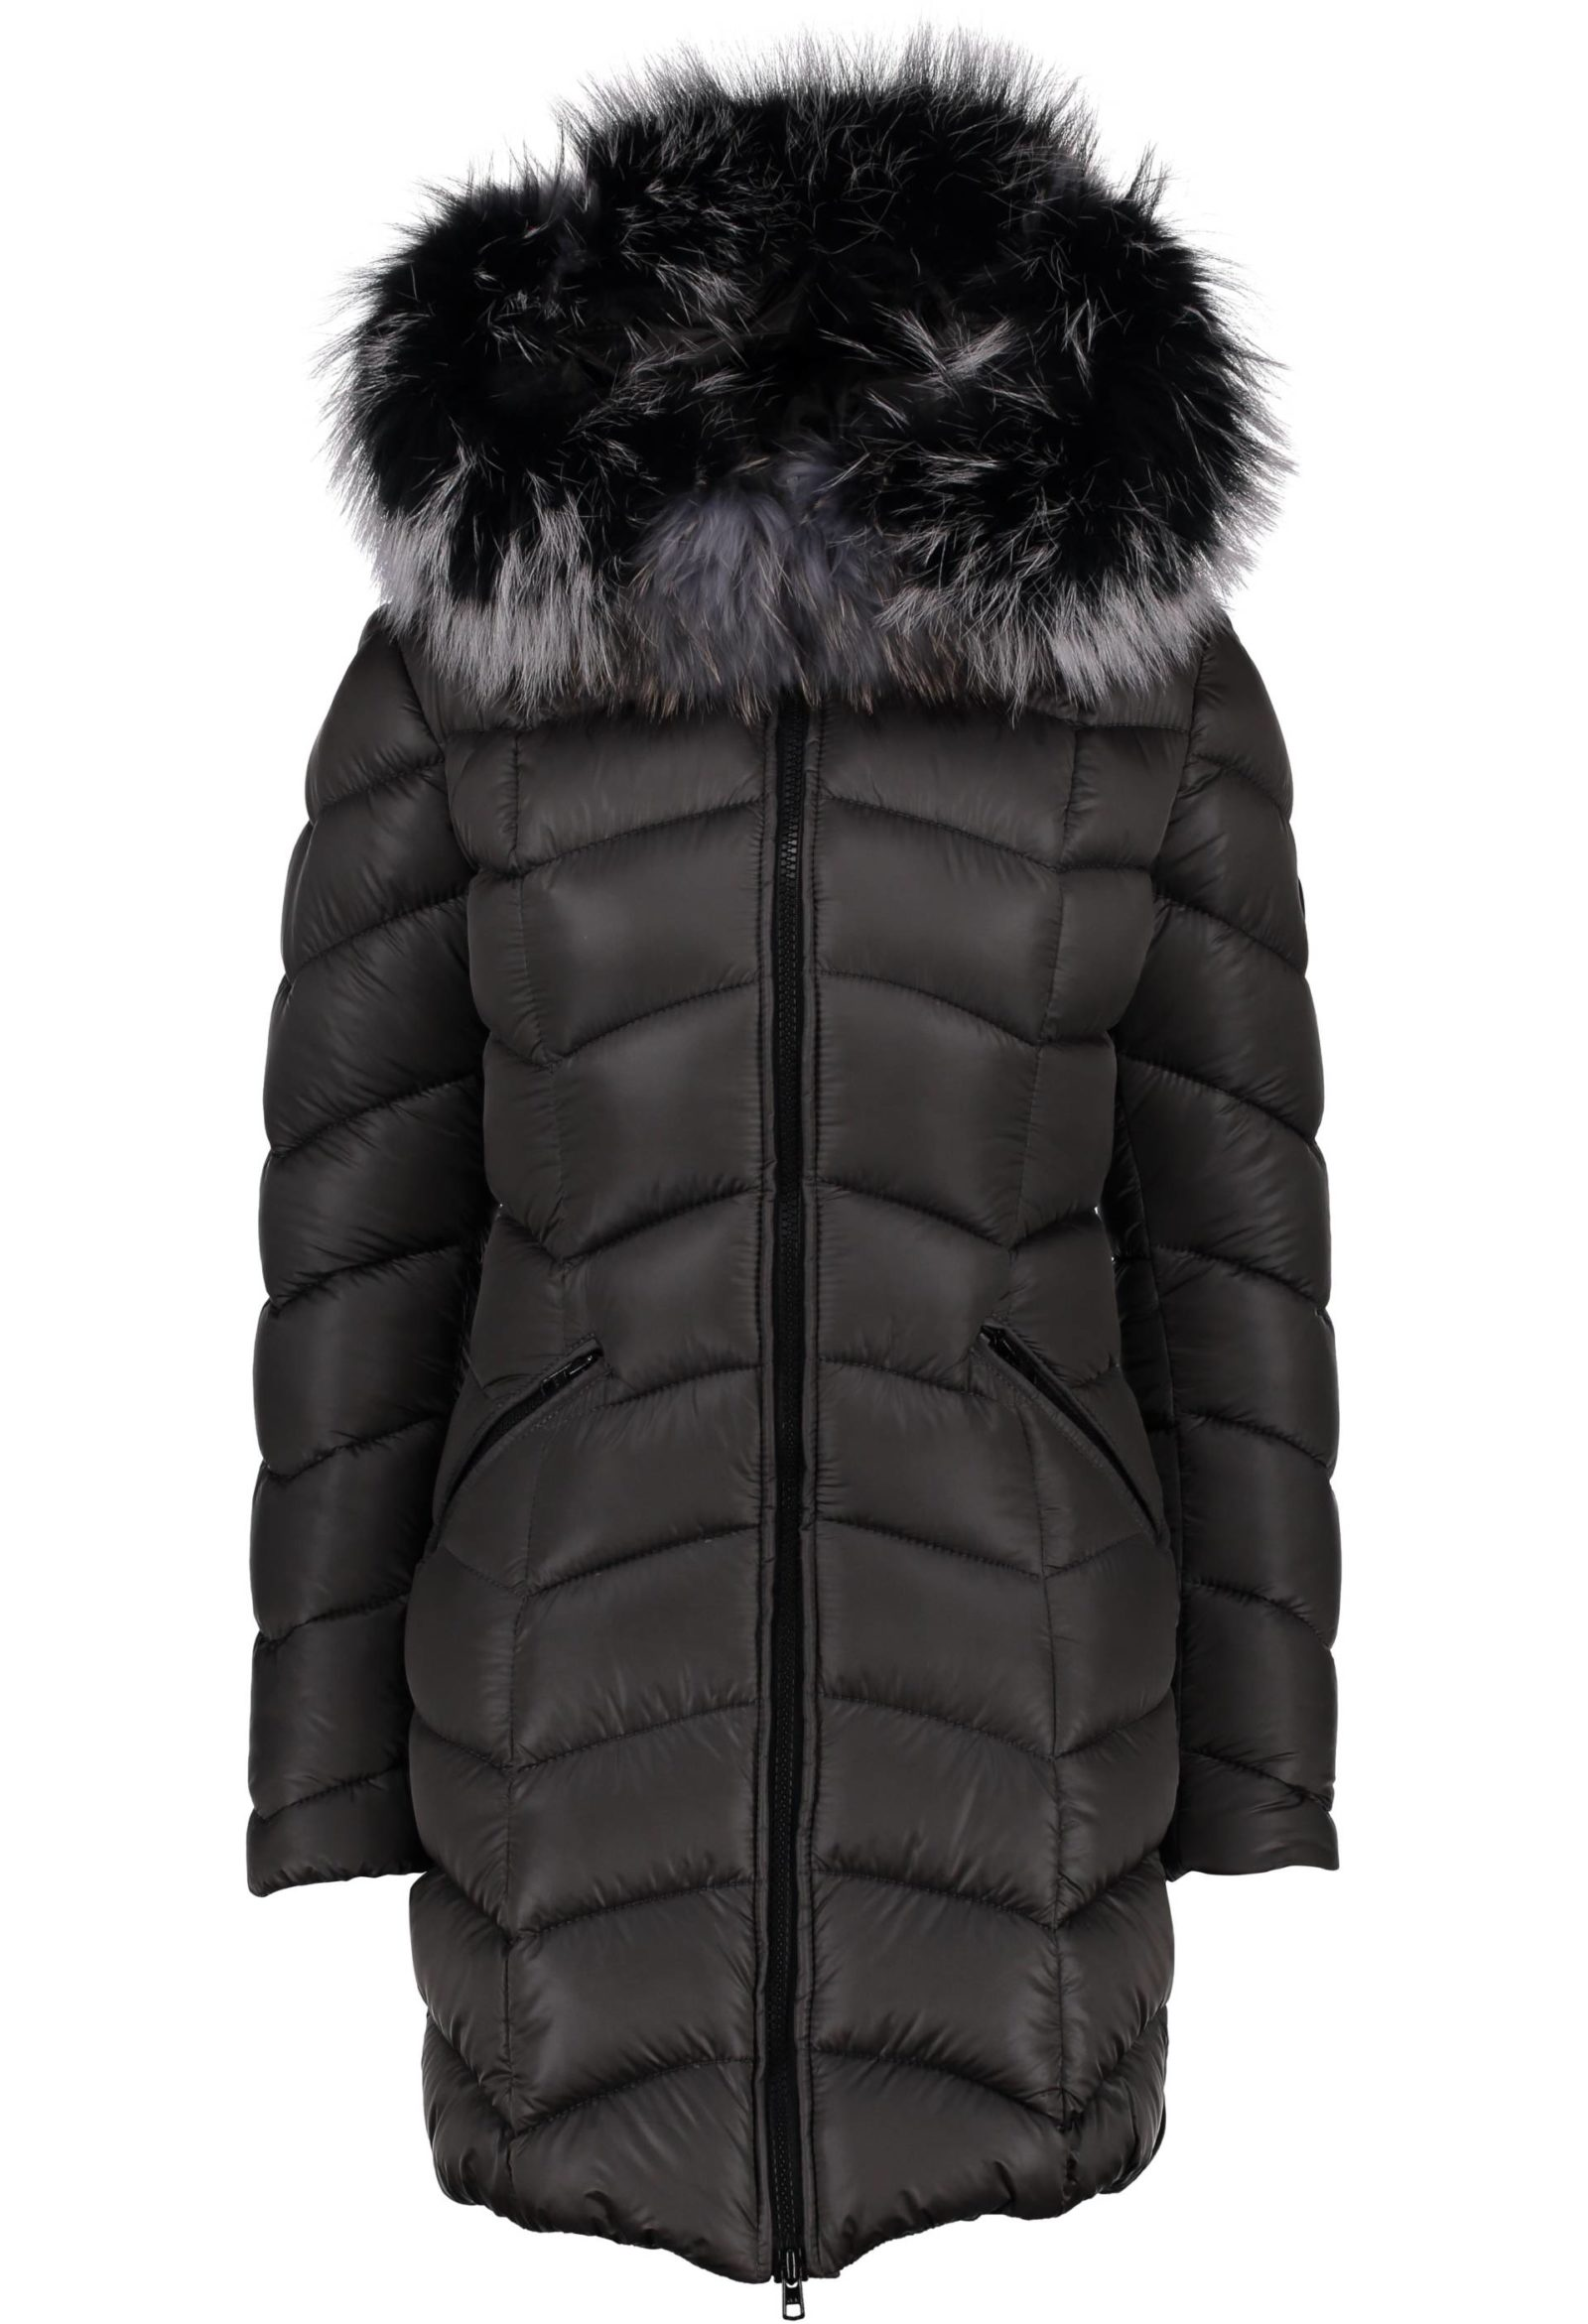 Gorgeous Designer Clothing for the Cold Weather